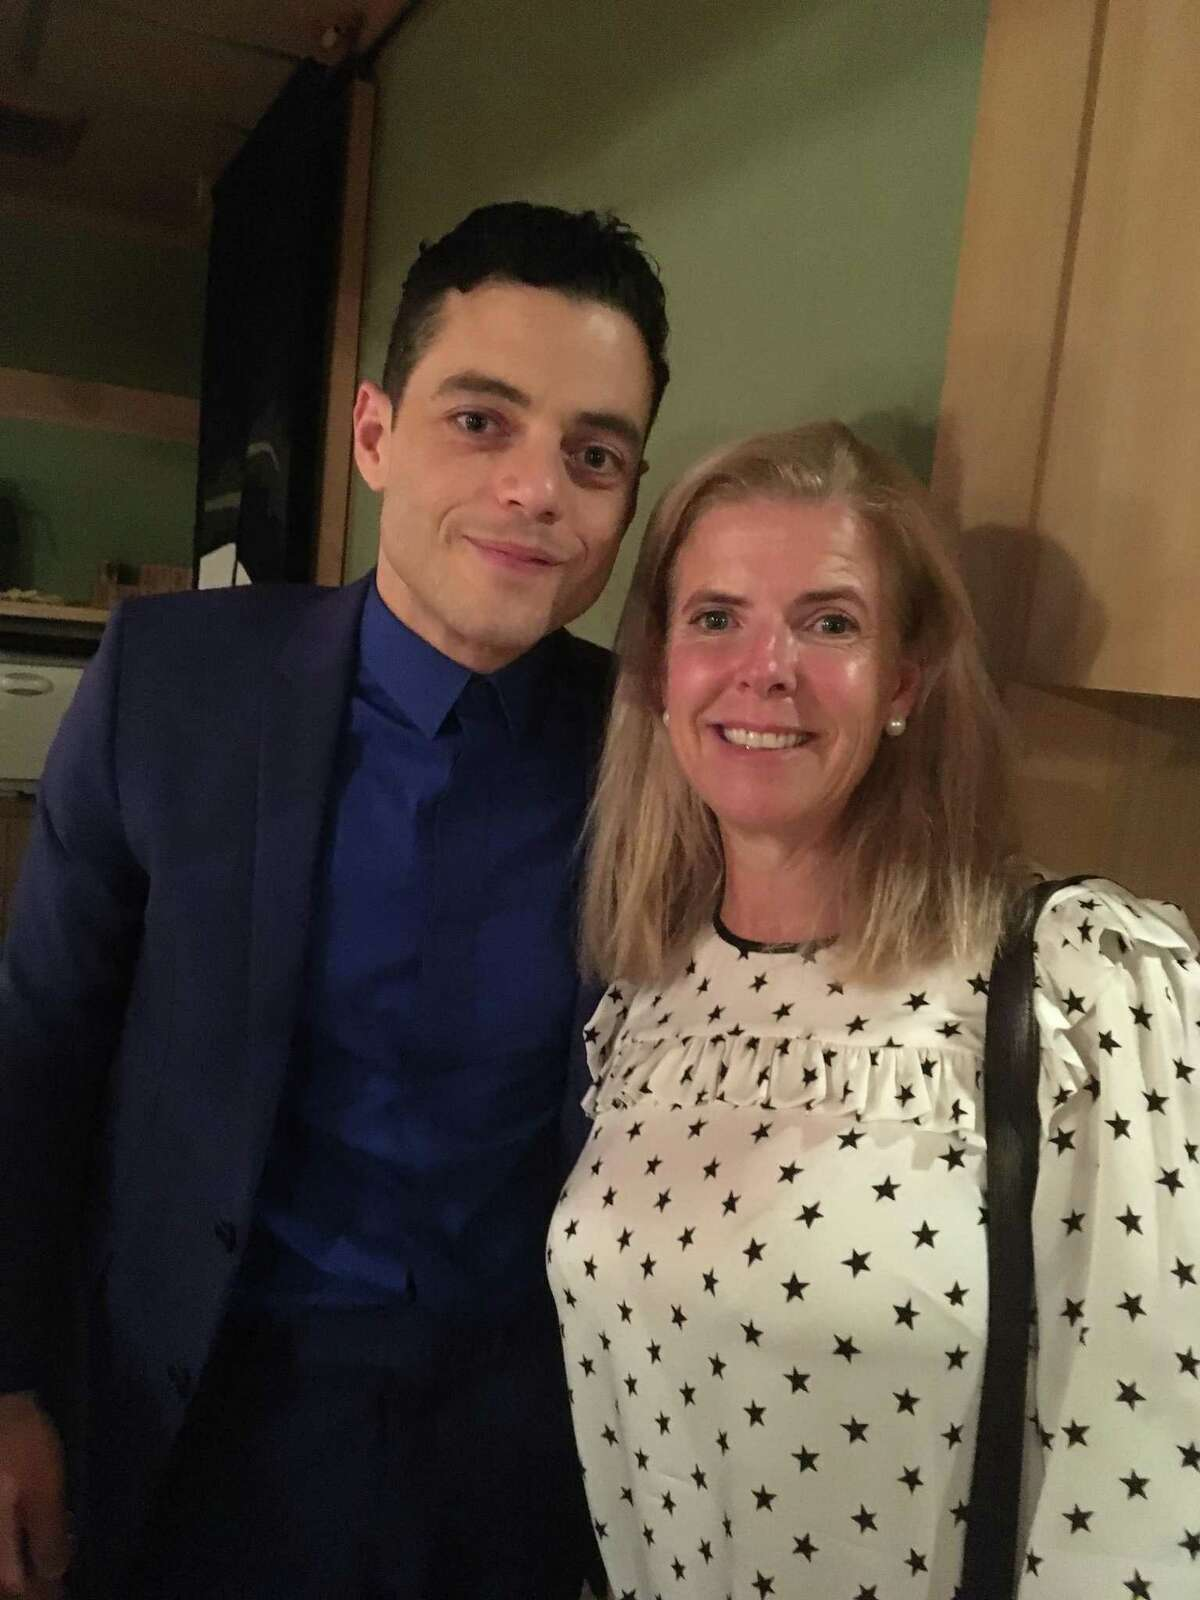 Riverside resident Kathleen Bellissimo with actor Rami Malek, who plays Queen lead singer Freddie Mercury in